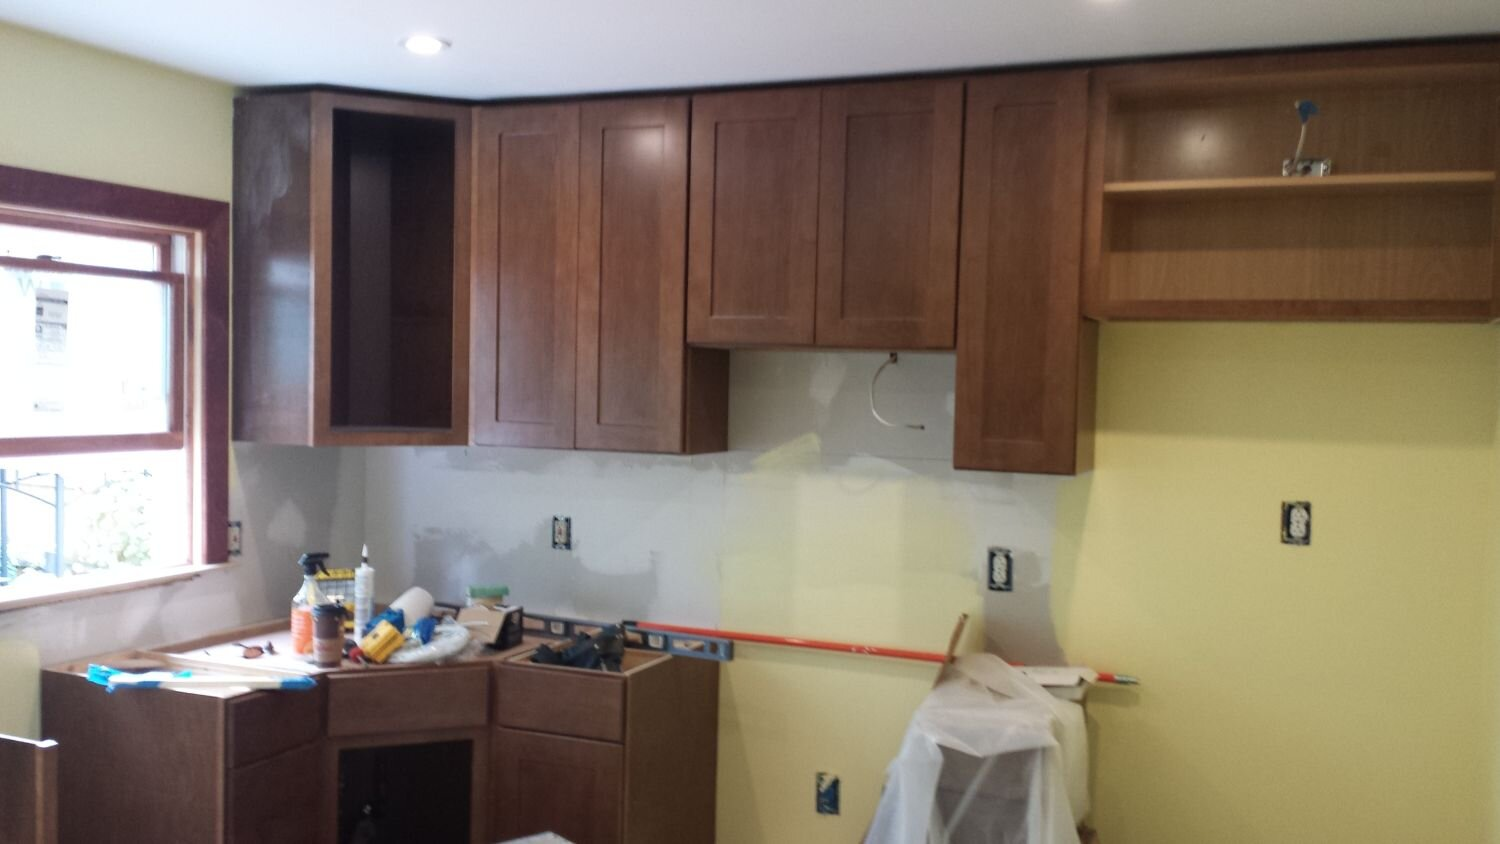 remodel a kitchen chinese cabinets with added pass through ink design concepts llc new are taking shape